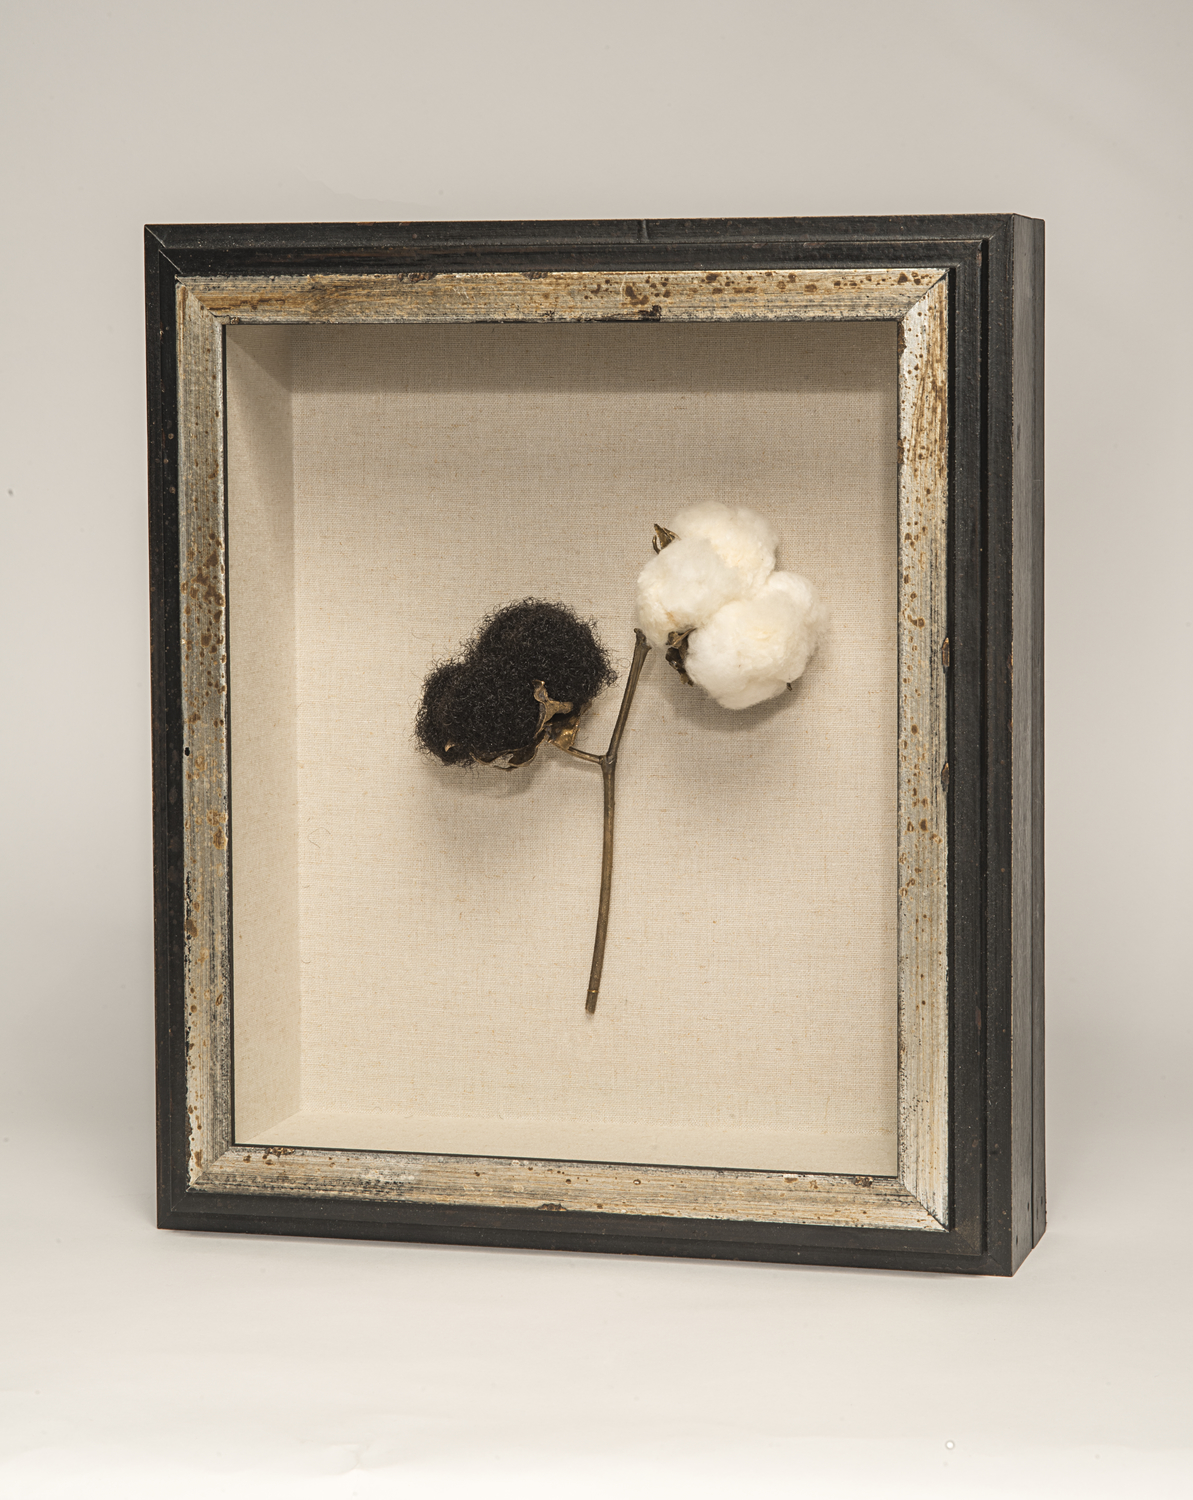 """Cotton to Hair"" by Sonya Clark, part of Sonya Clark: Tatter, Bristle, and Mend"